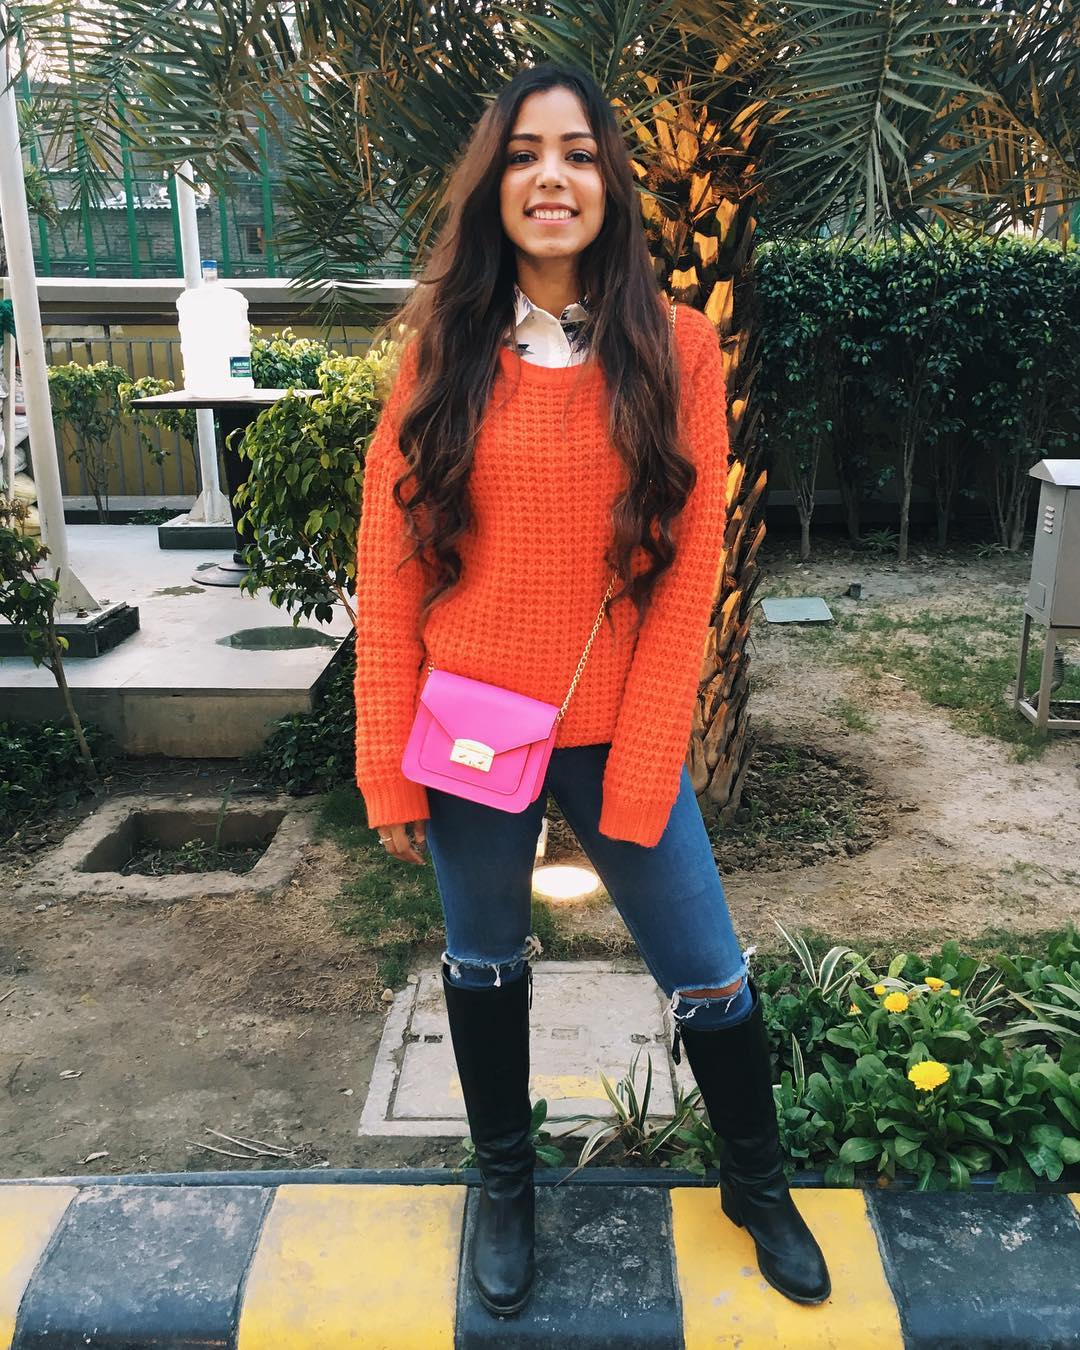 Swanky Orange Knitted Sweater With Ripped Jeans, Leather Shoes And Crossbody Pink Bag